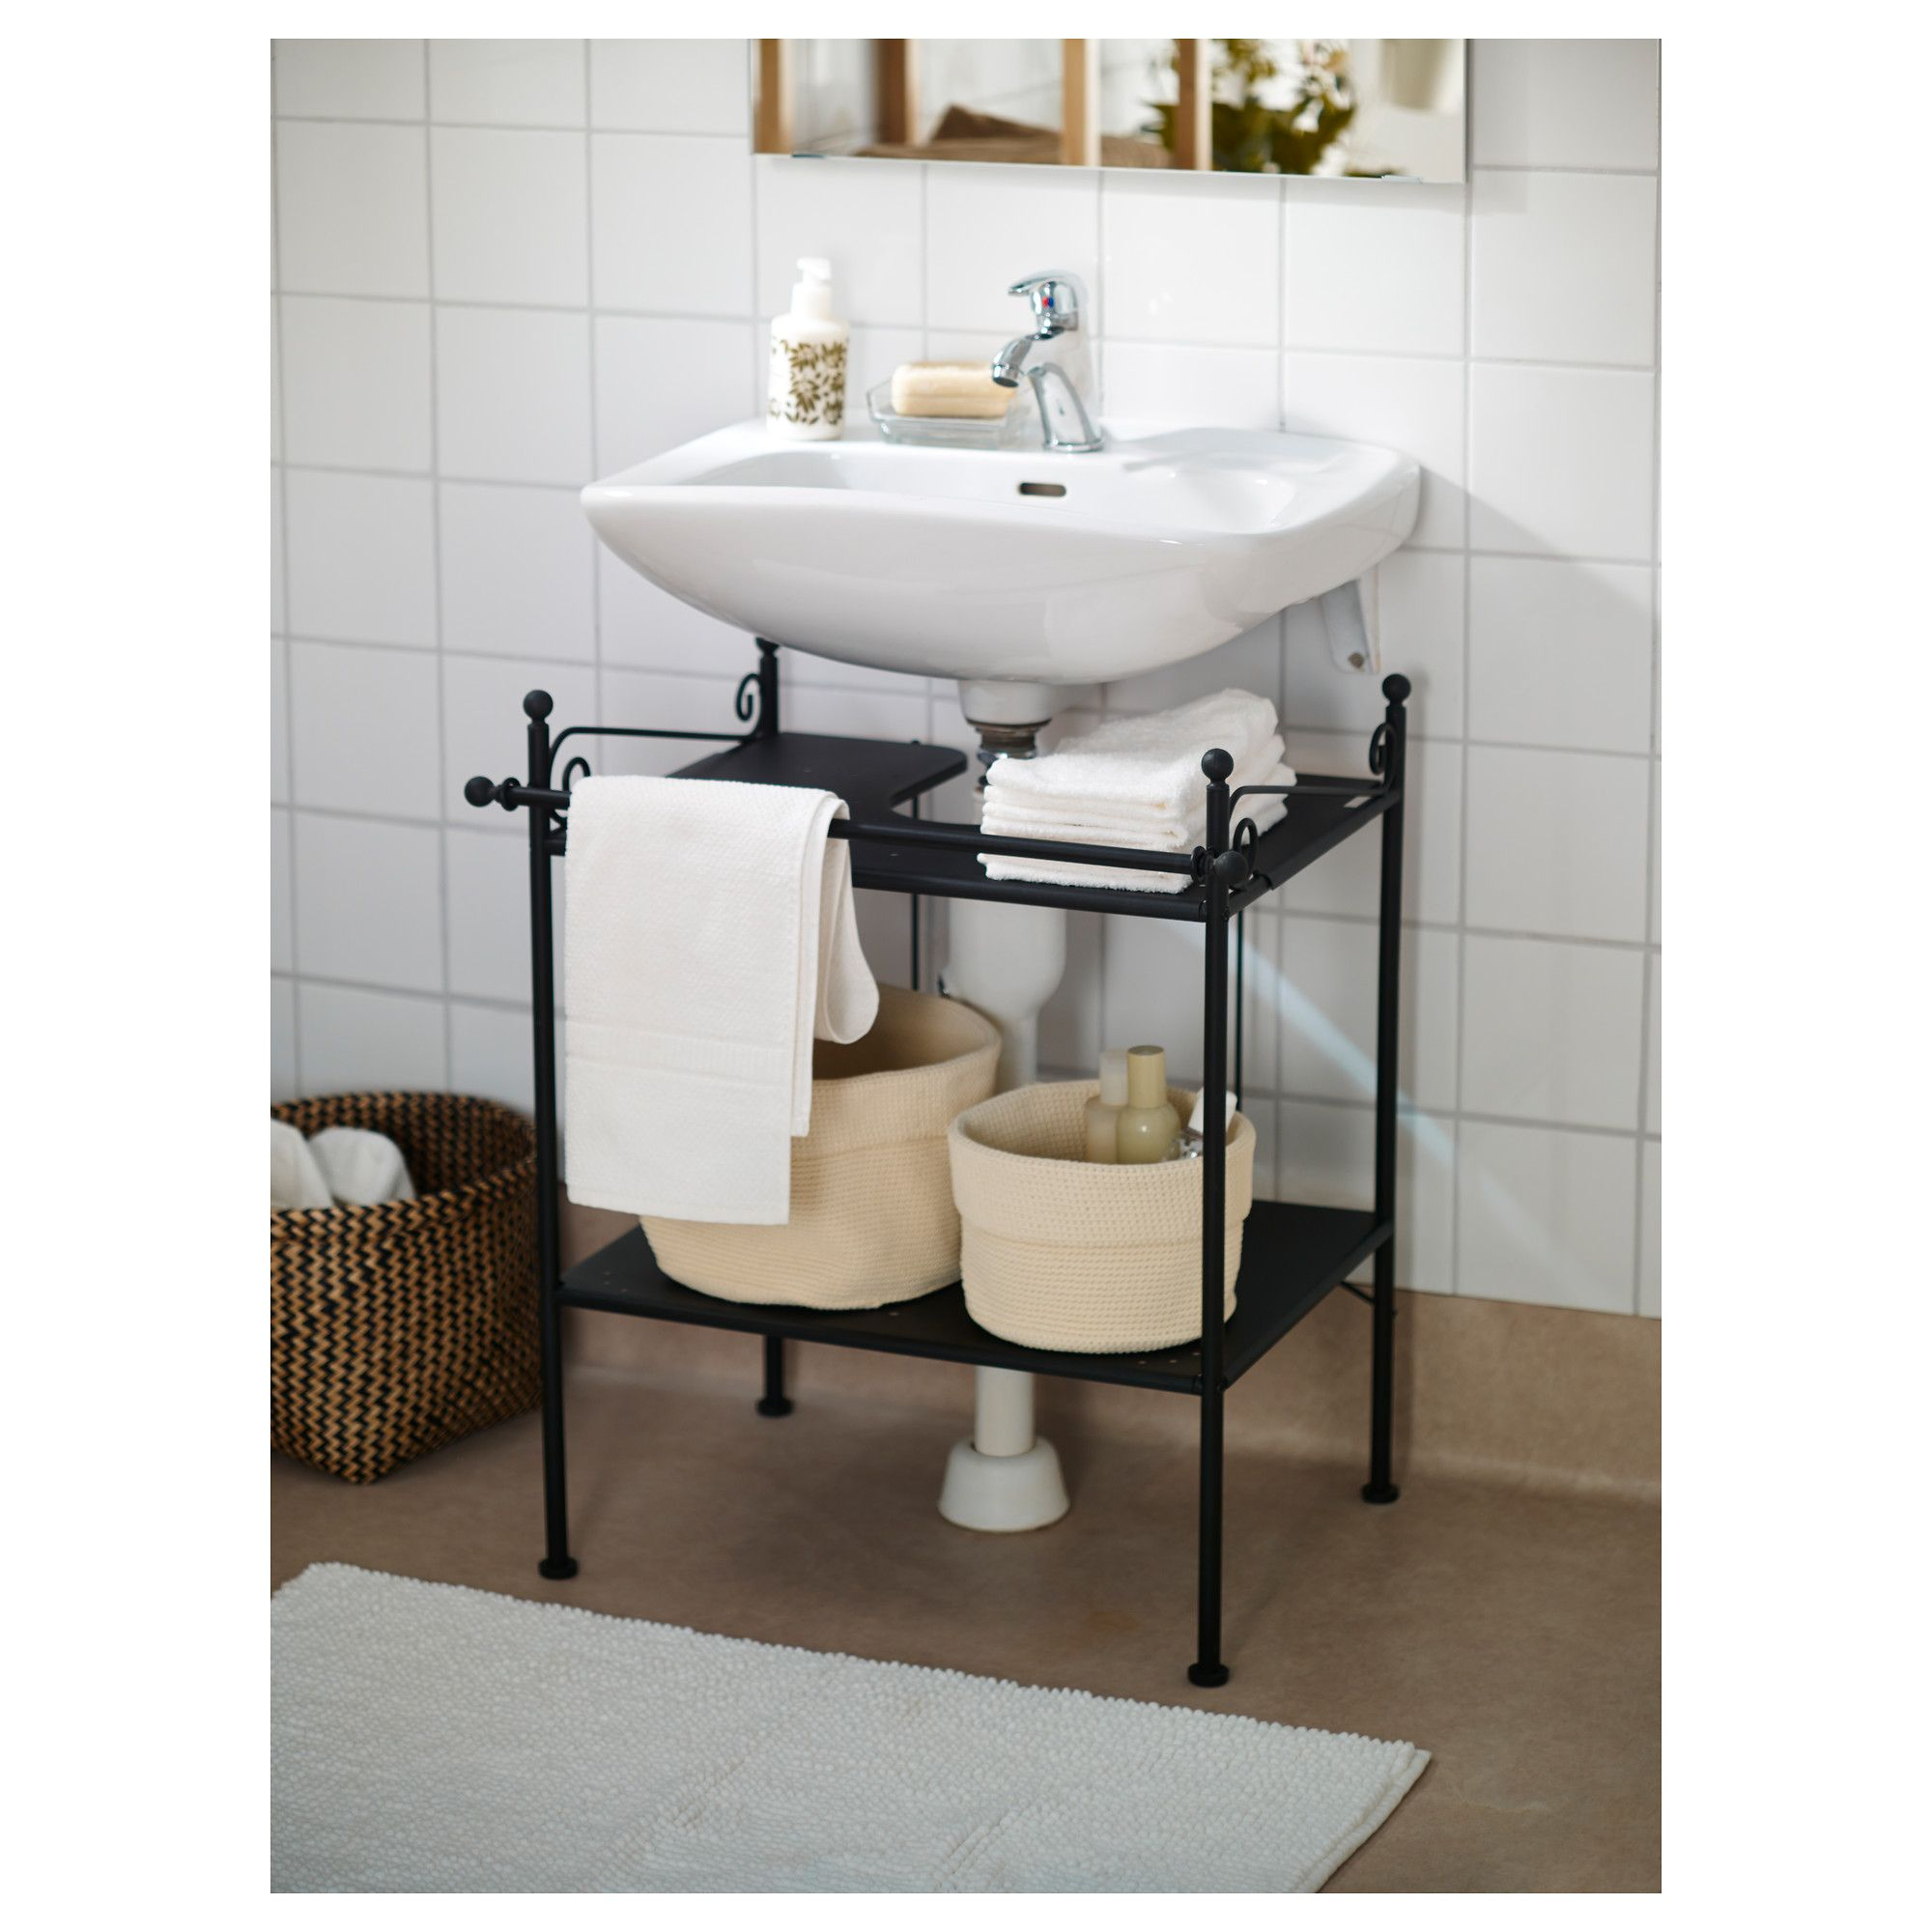 Ronnskar Ikea Ideas For The House Pinterest Pedestal Sink Storage Pedestal